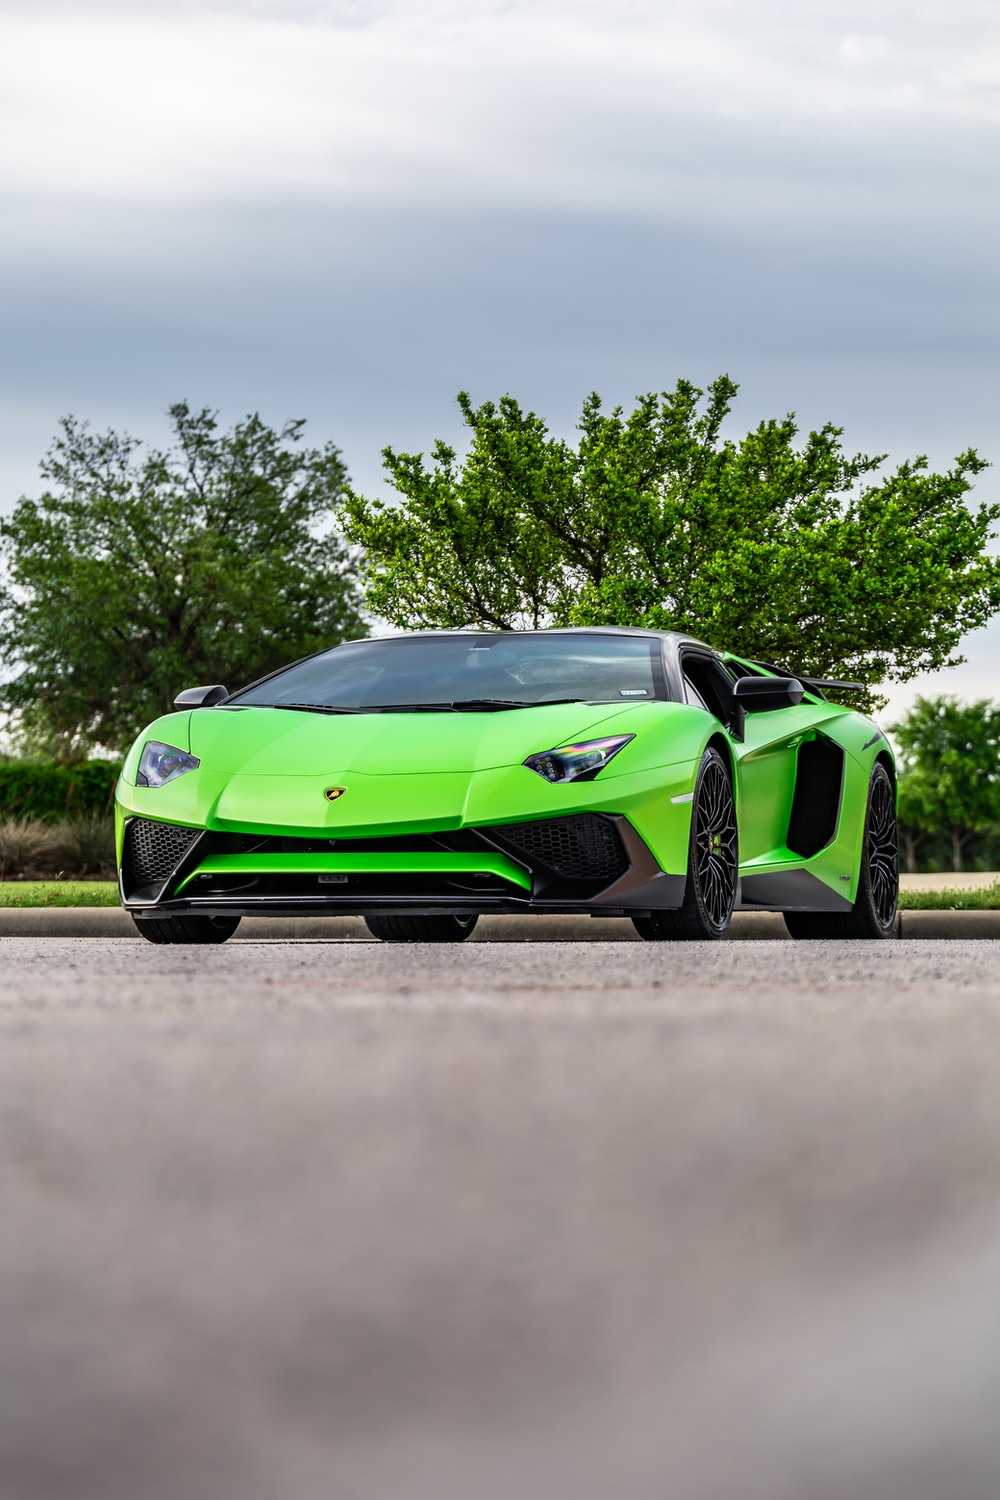 green and black lamborghini aventador parked on brown field during daytime